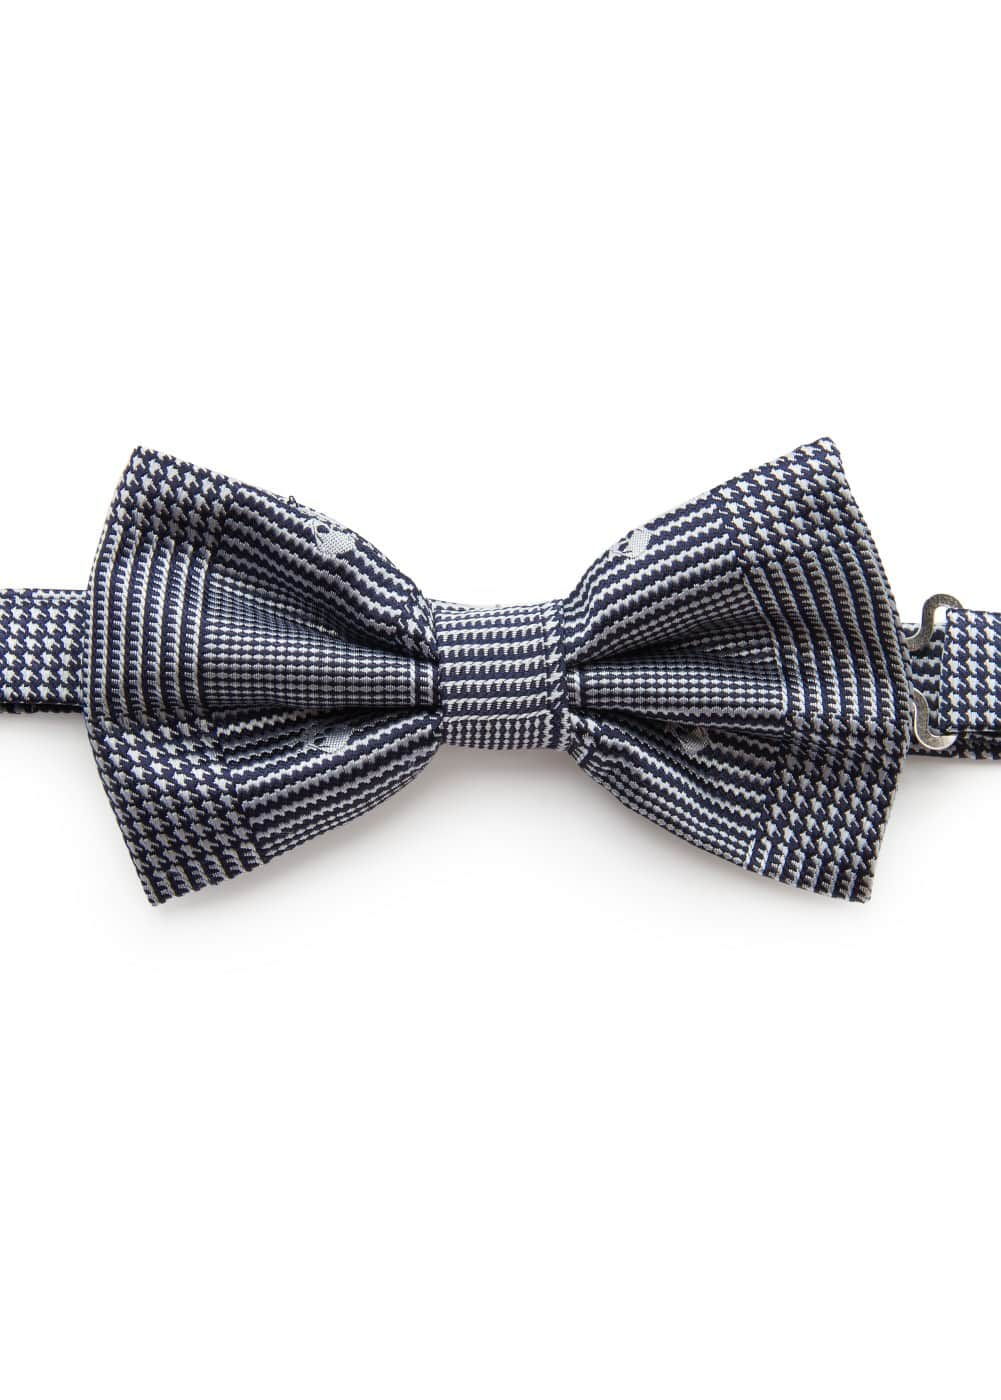 Skull Prince of Wales bow-tie